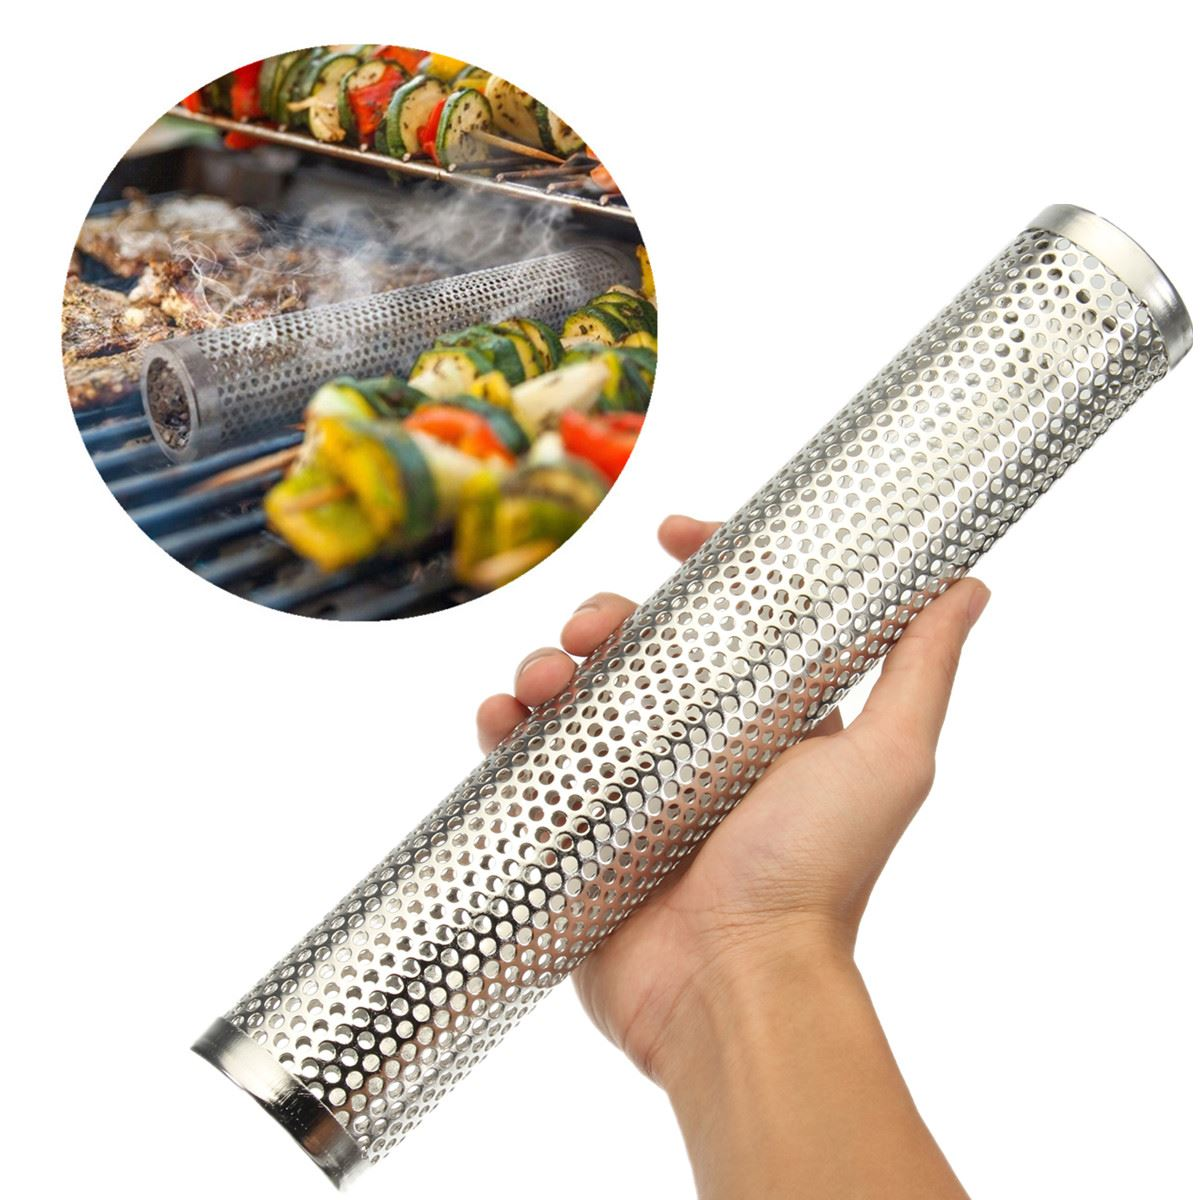 ... Mesh BBQ Grill Hot Cold Smoking Tube Smoke Generator Stainless Steel  Smoker Wood Pellet Kitchen Outdoors ...